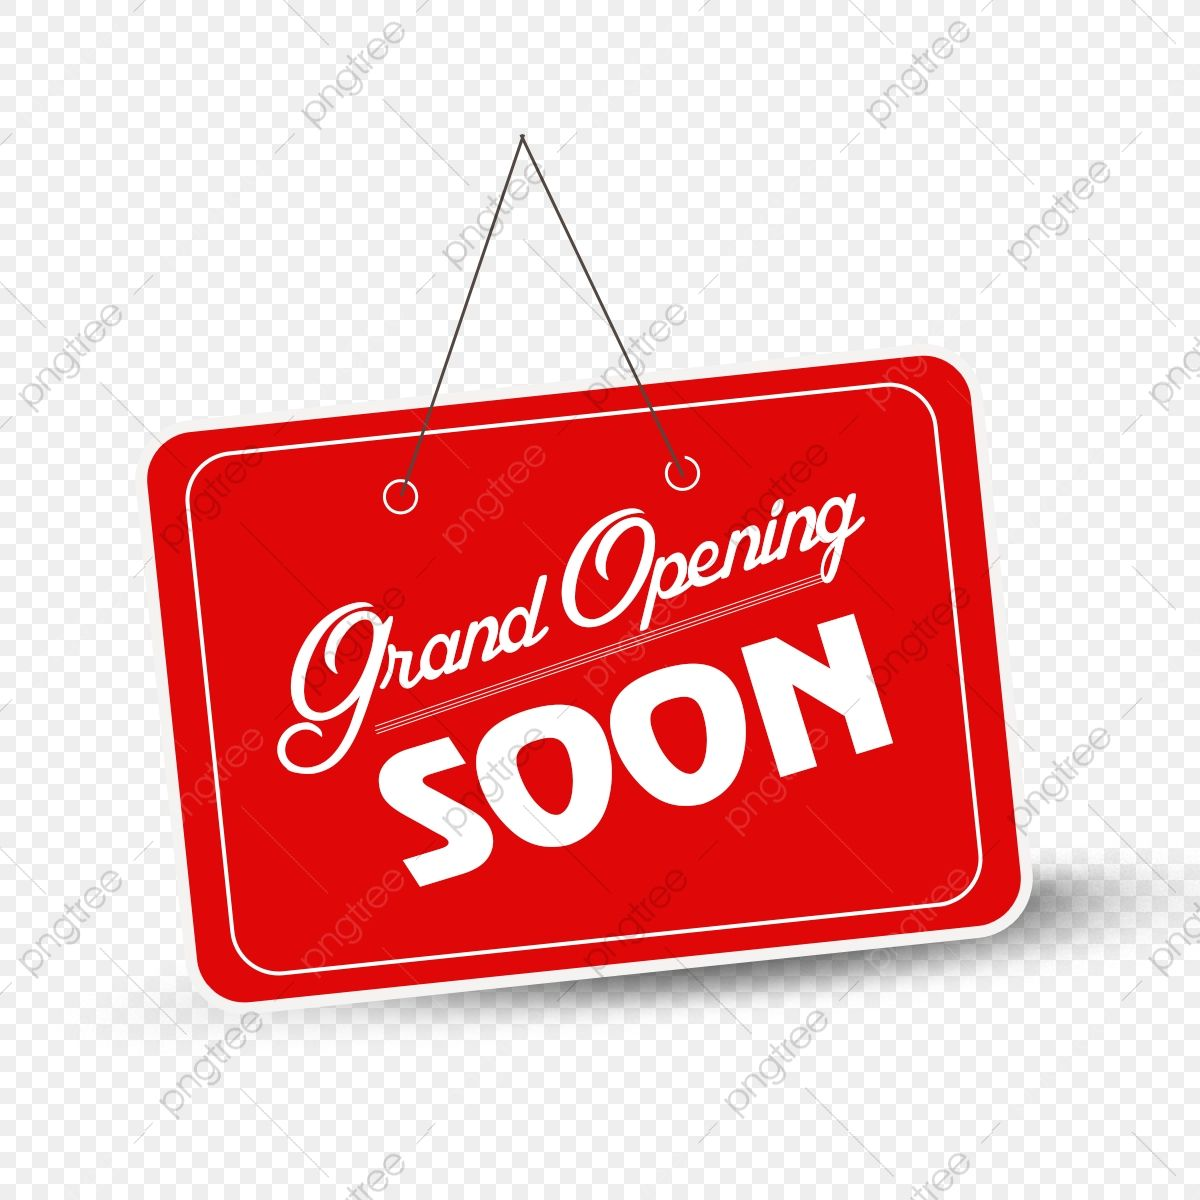 Grand Opening Soon Tag Grand Opening Soon Grand Opening Soon Red Png Transparent Clipart Image And Psd Fi Grand Opening Geometric Pattern Background Clip Art